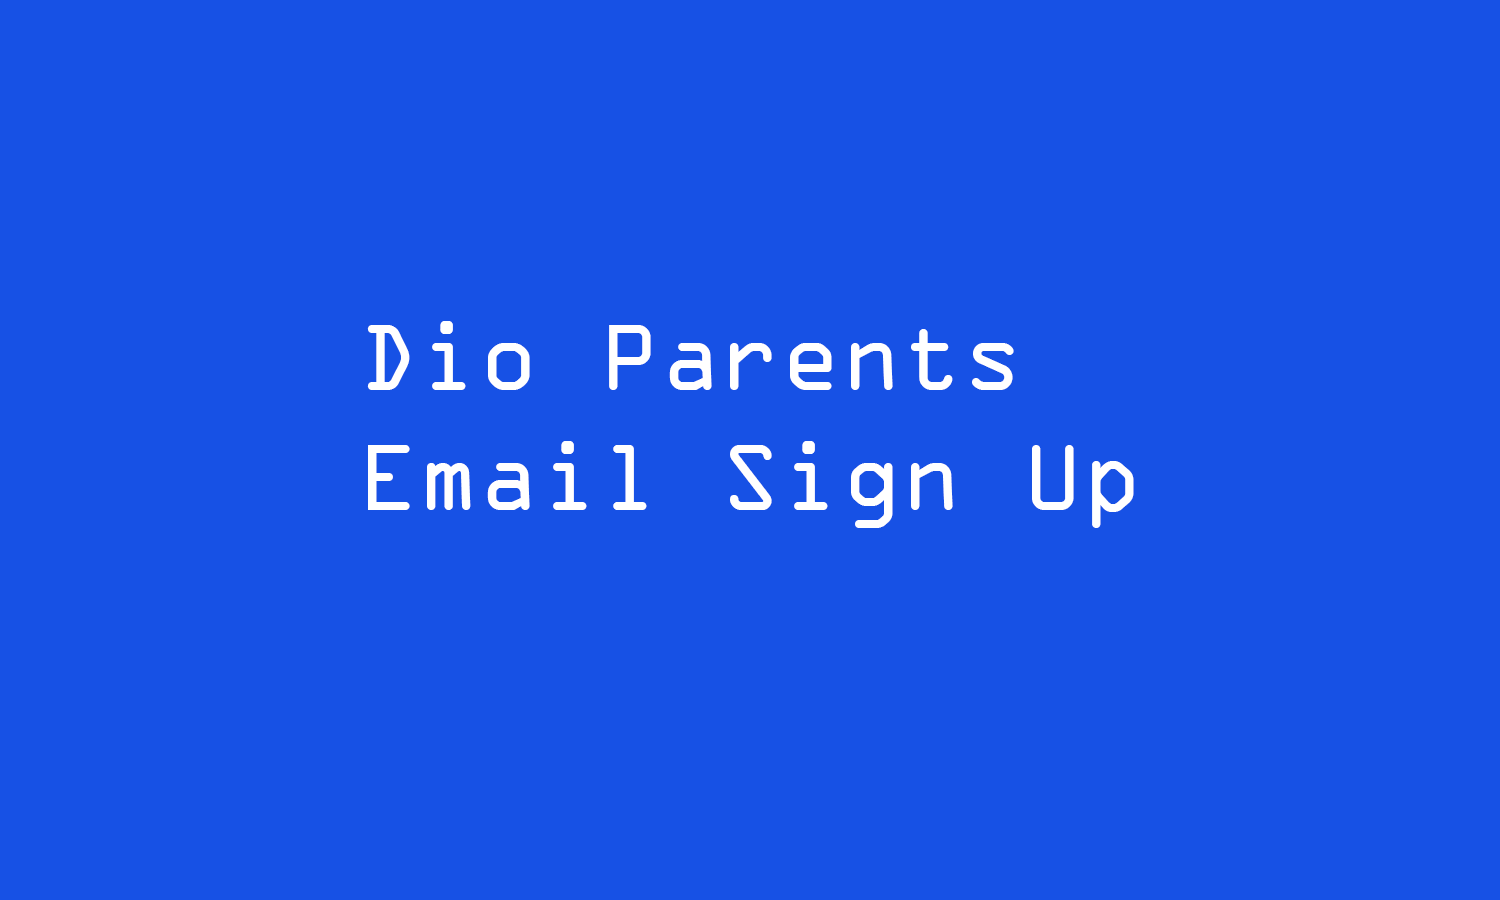 Dio Parents Email Sign Up.png